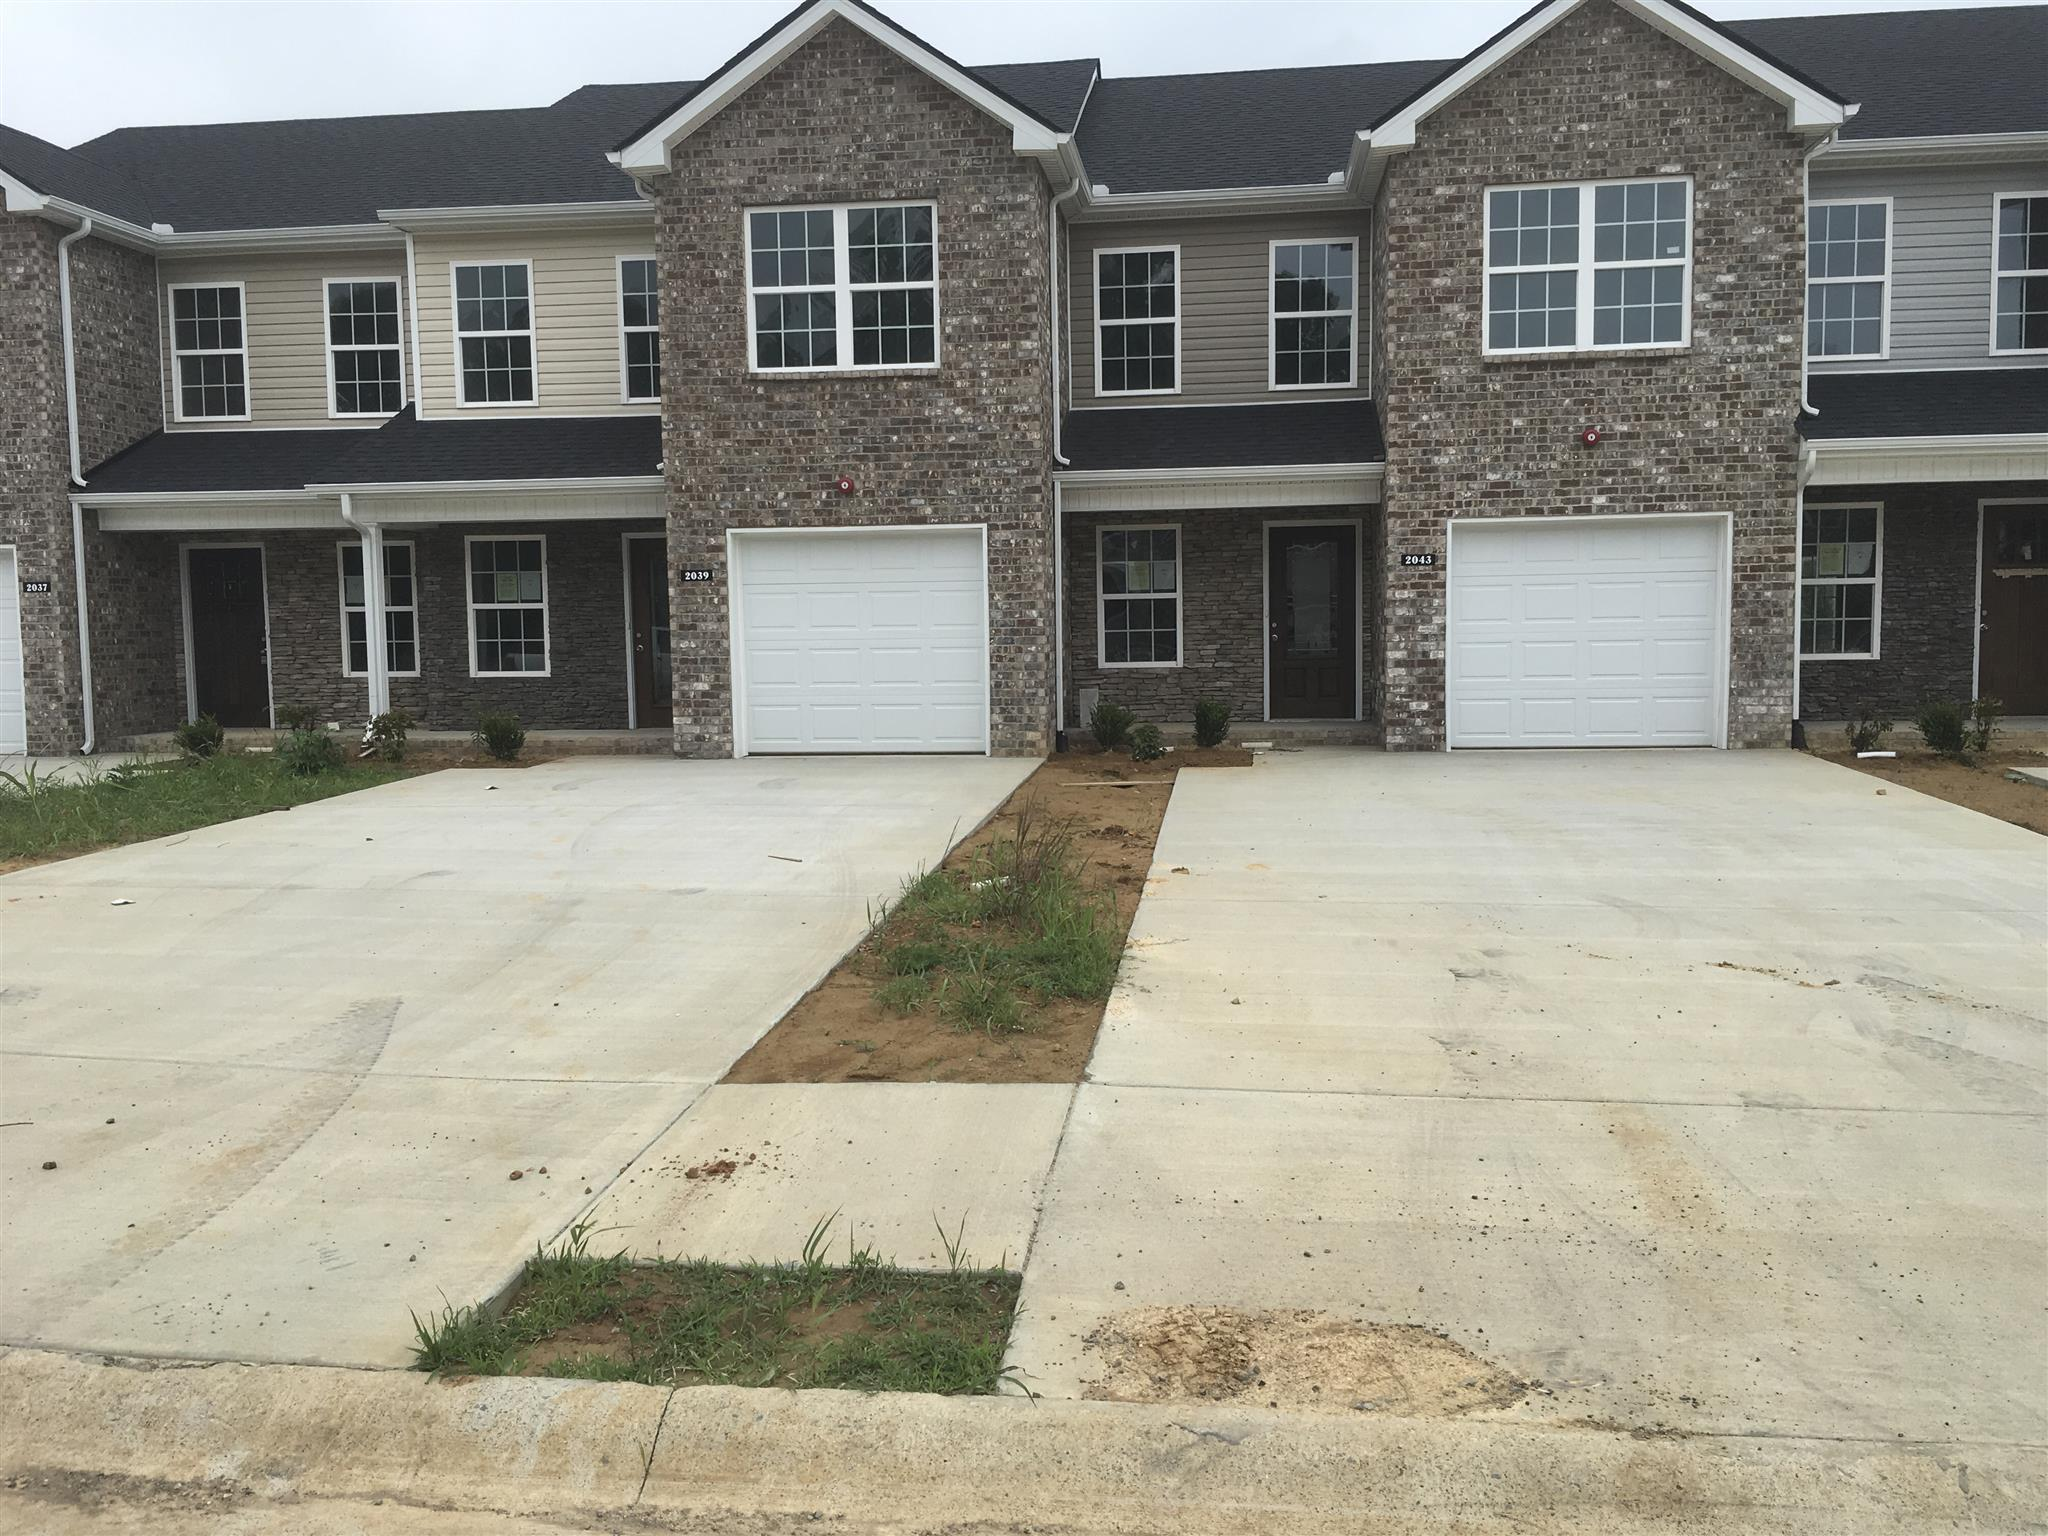 2043 Downstream Drive, Ashland City, TN 37015 - Ashland City, TN real estate listing